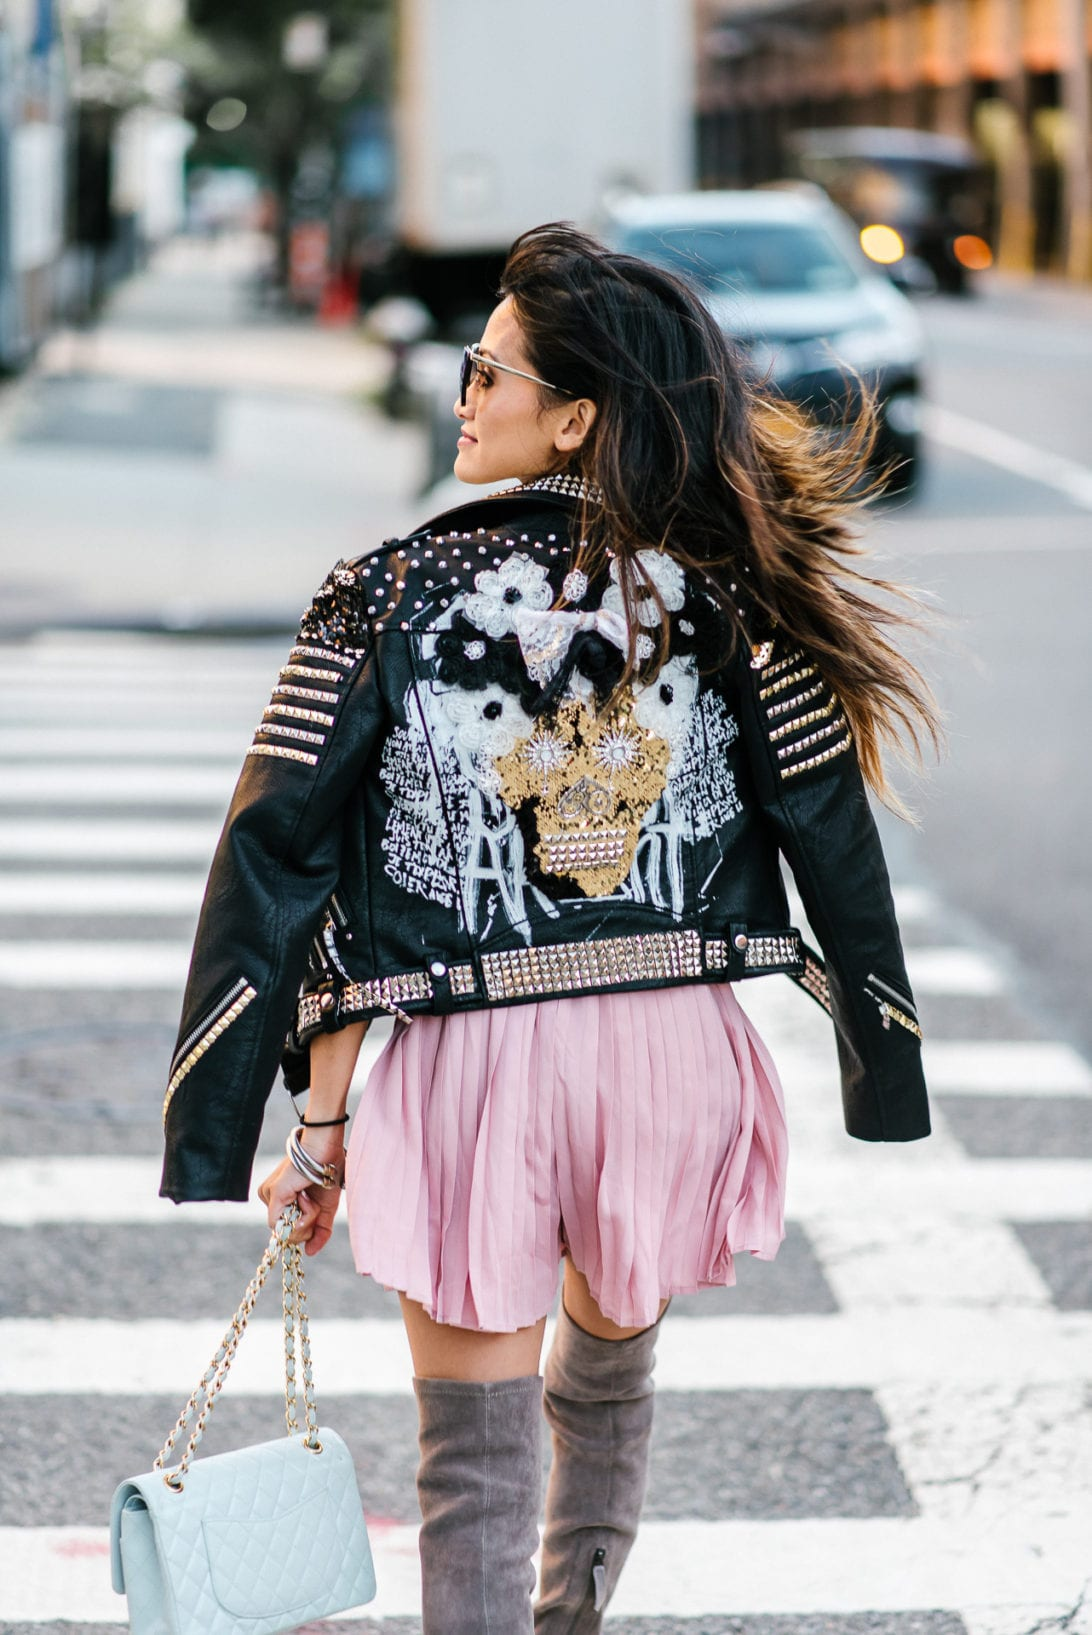 NYFW, New York FASHION WEEK, CUSTOMIZE DIY JACKET, DIY LEATHER JACKET, EMBELLISHED JACKET, STUDDED JACKET, SEQUIN JACKET, NYFW STREET STYLE, FRIDA KAHLO